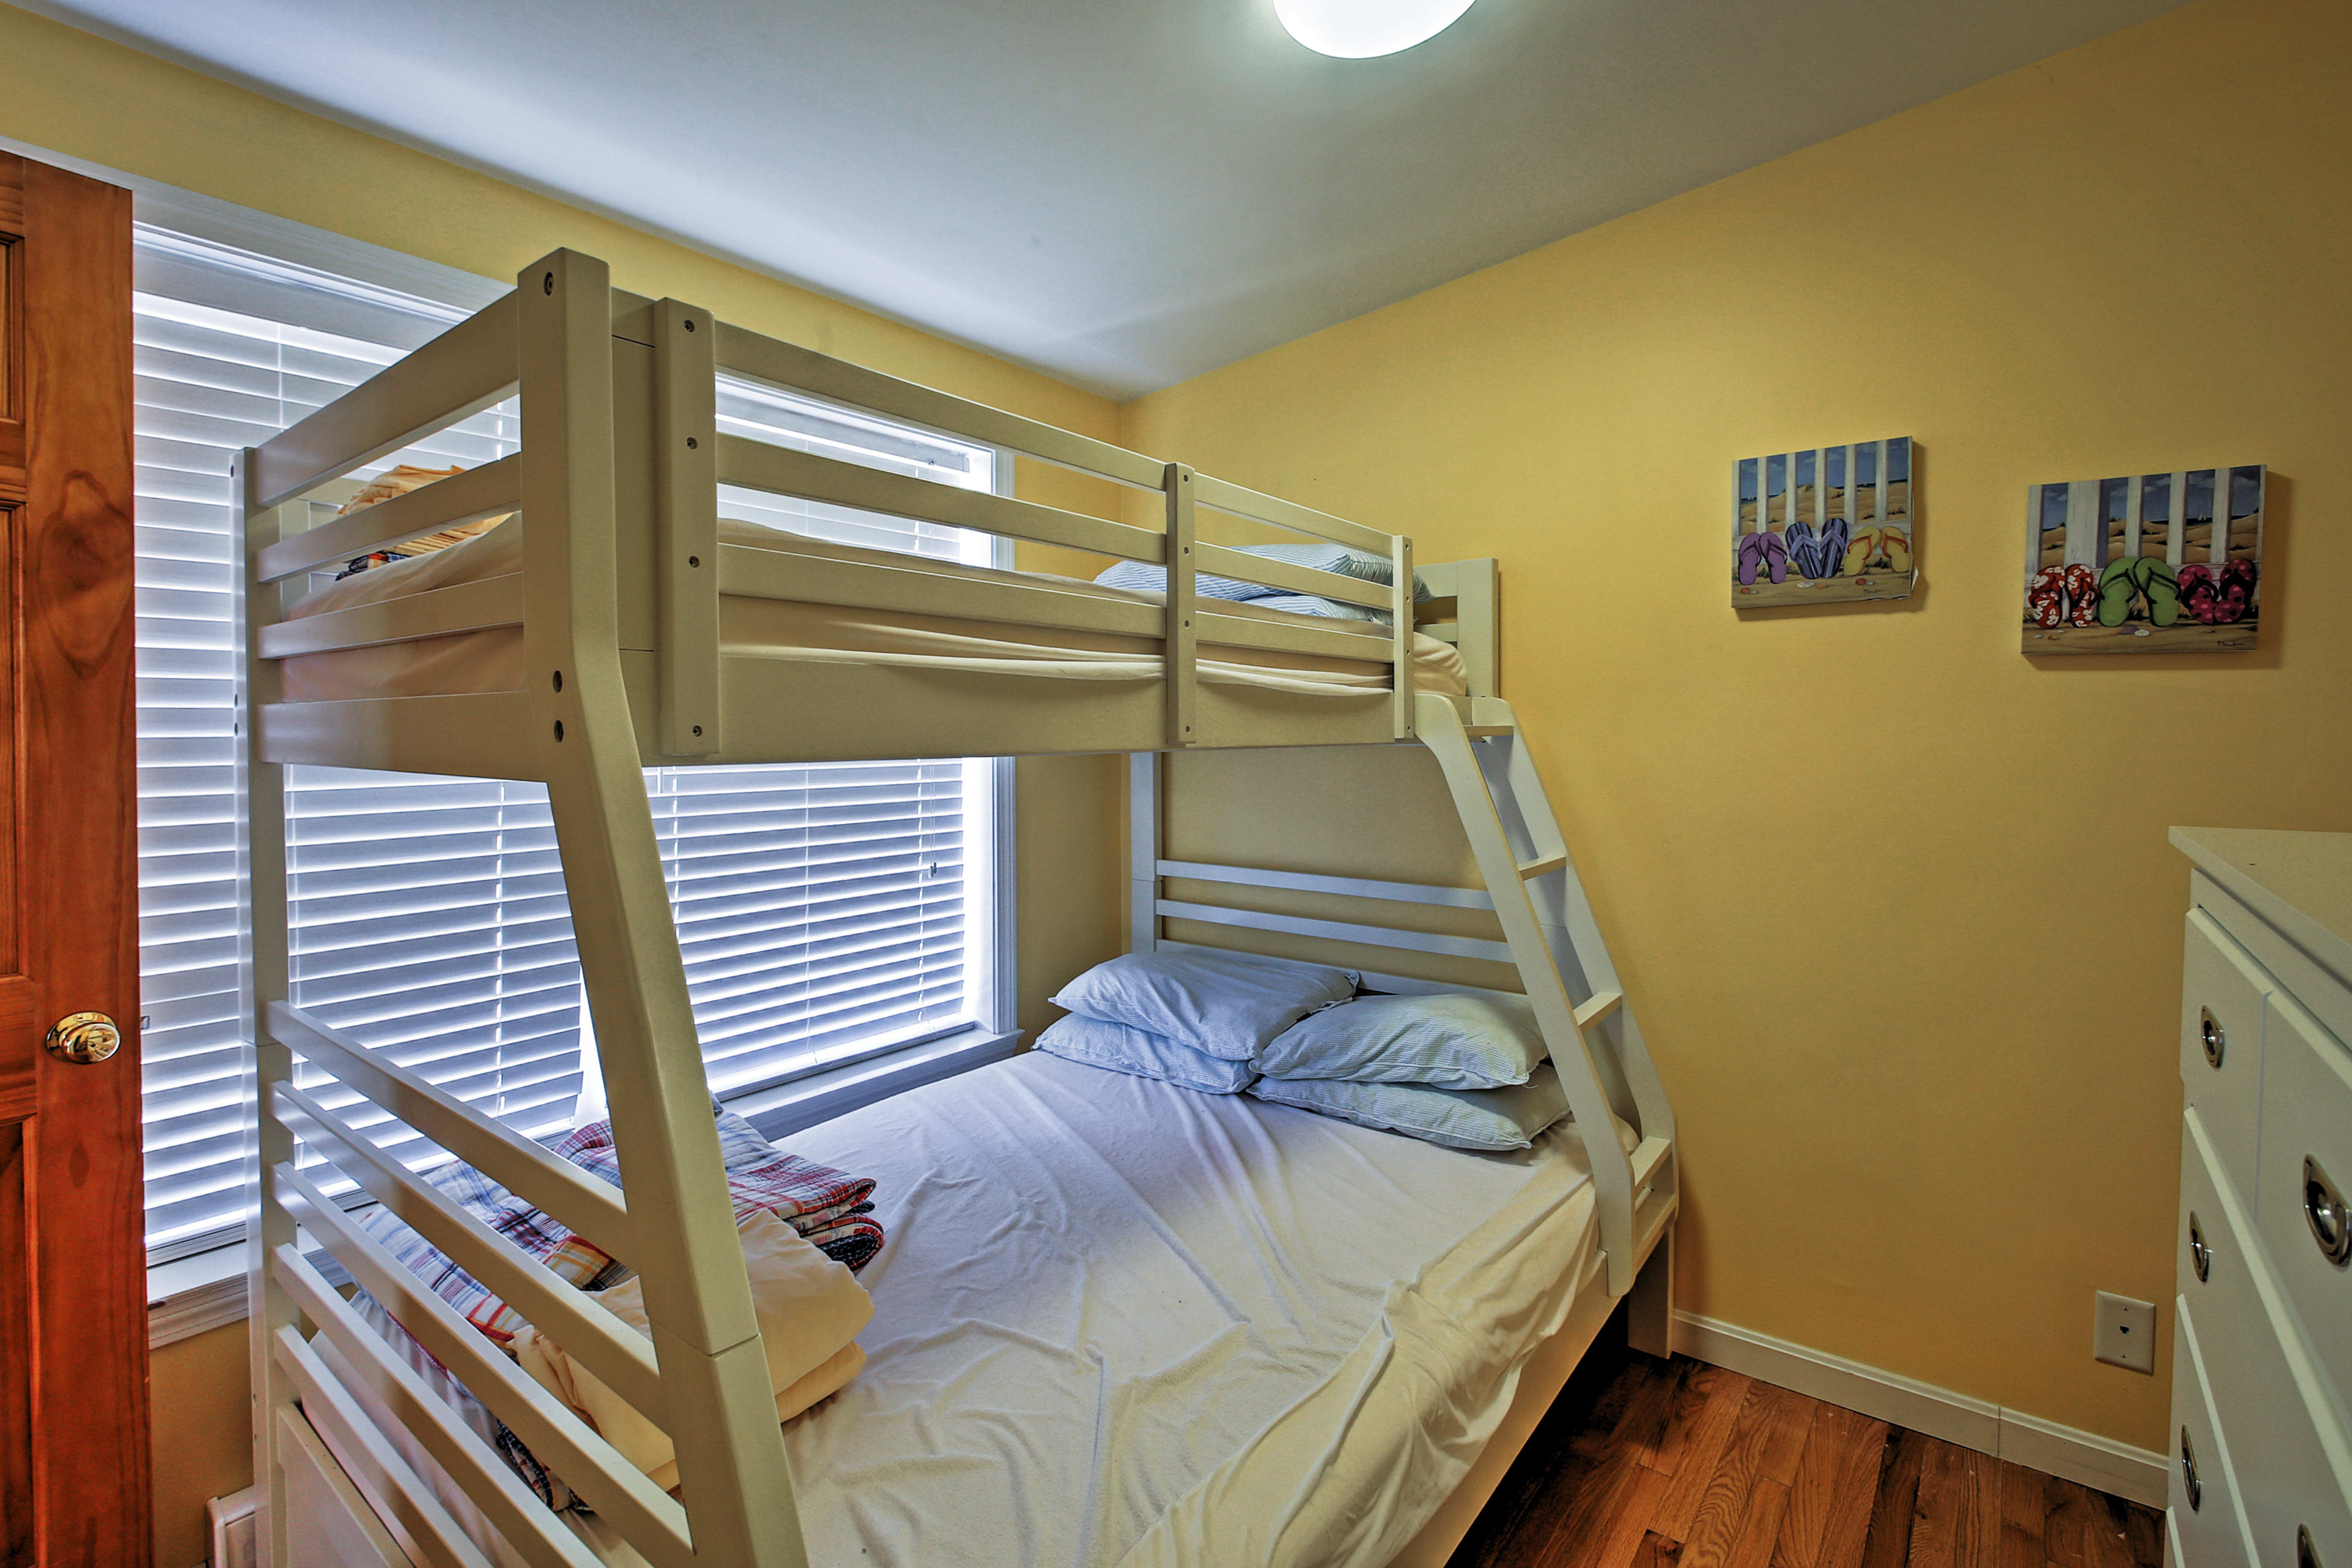 The kids will love this twin-over-full bunk bed!